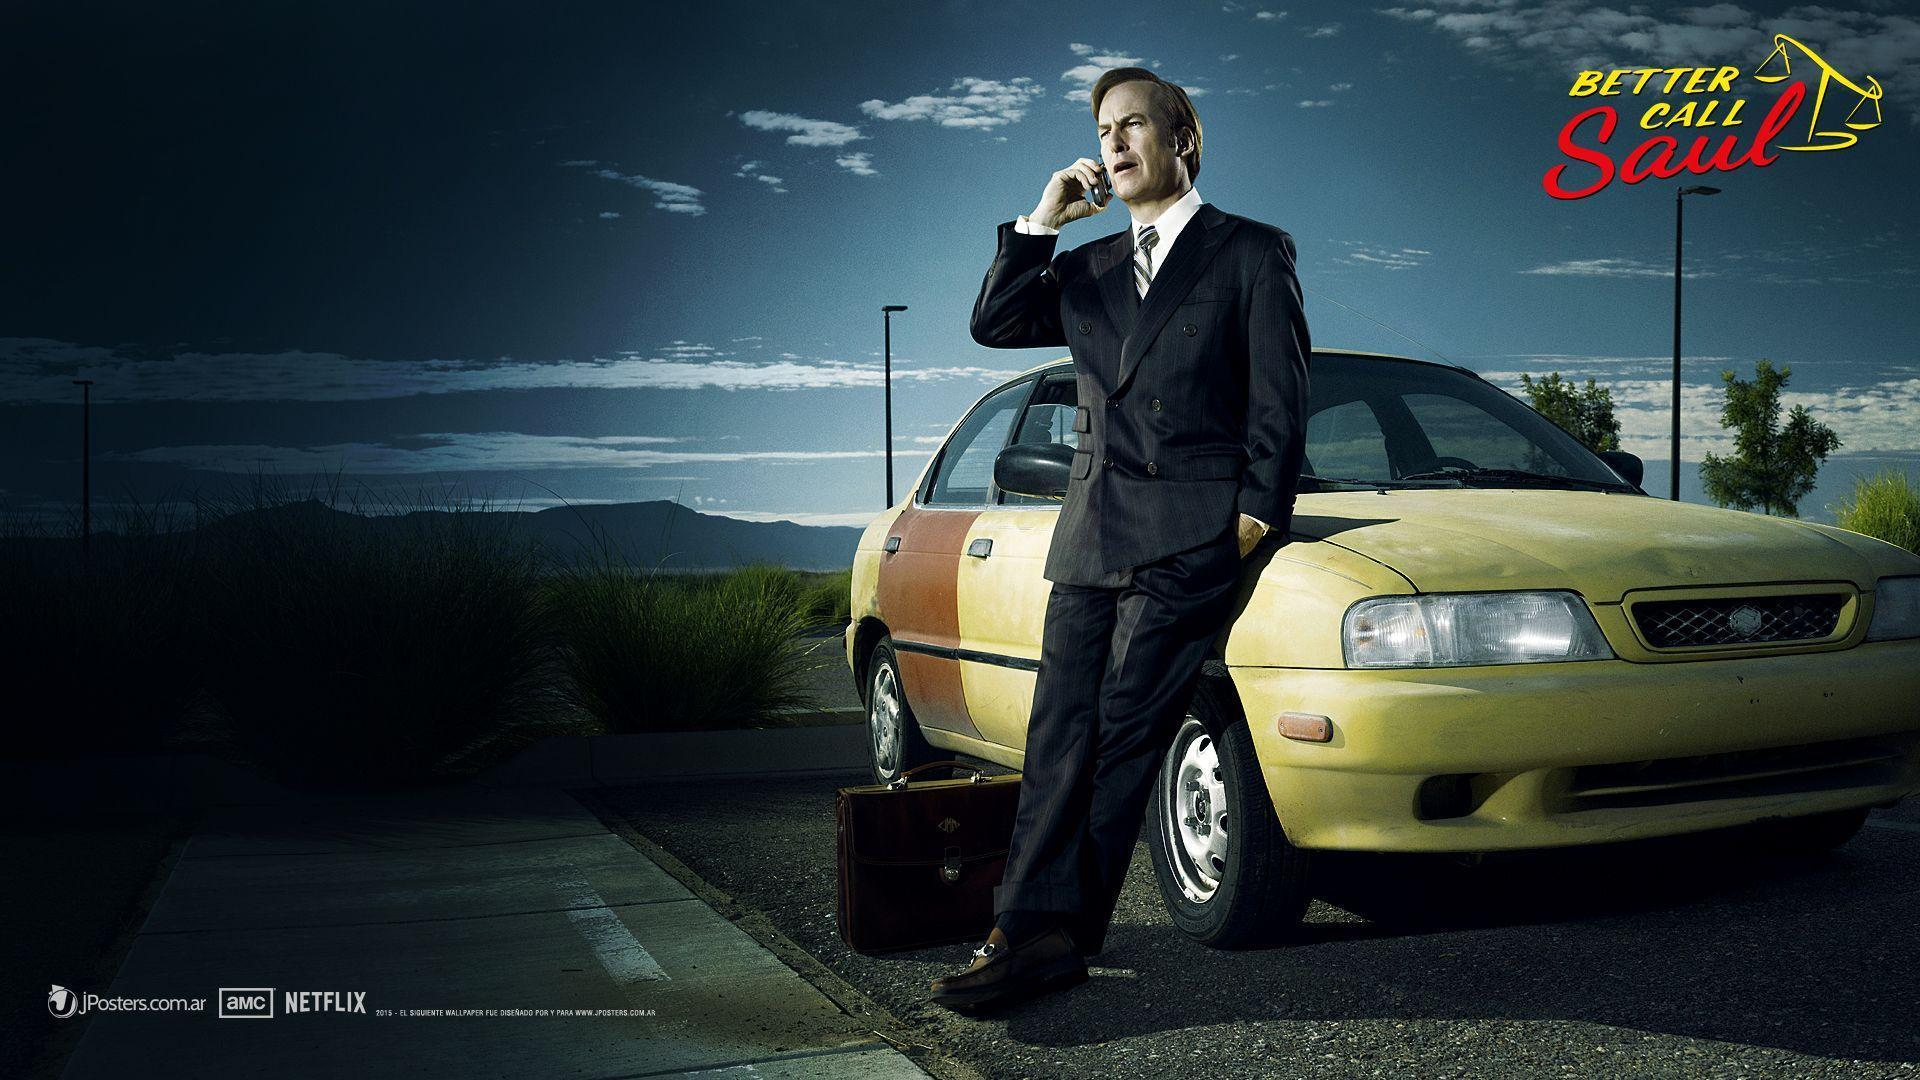 Better Call Saul Zoom Background 4